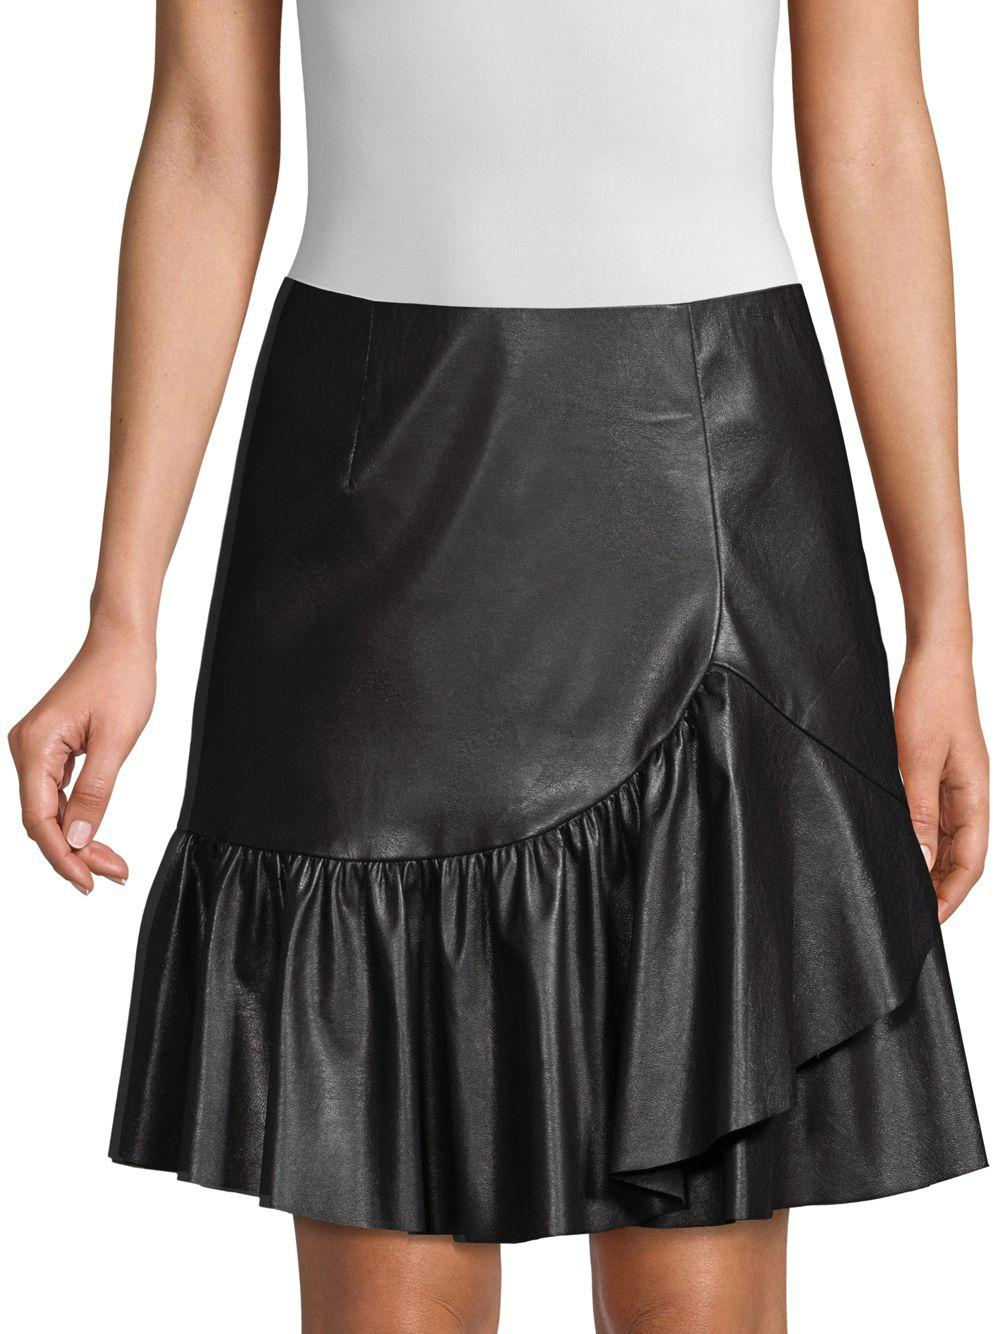 b1c6d5b9d Rebecca Taylor Vegan Leather Faux-wrap A-line Skirt in Black - Save ...